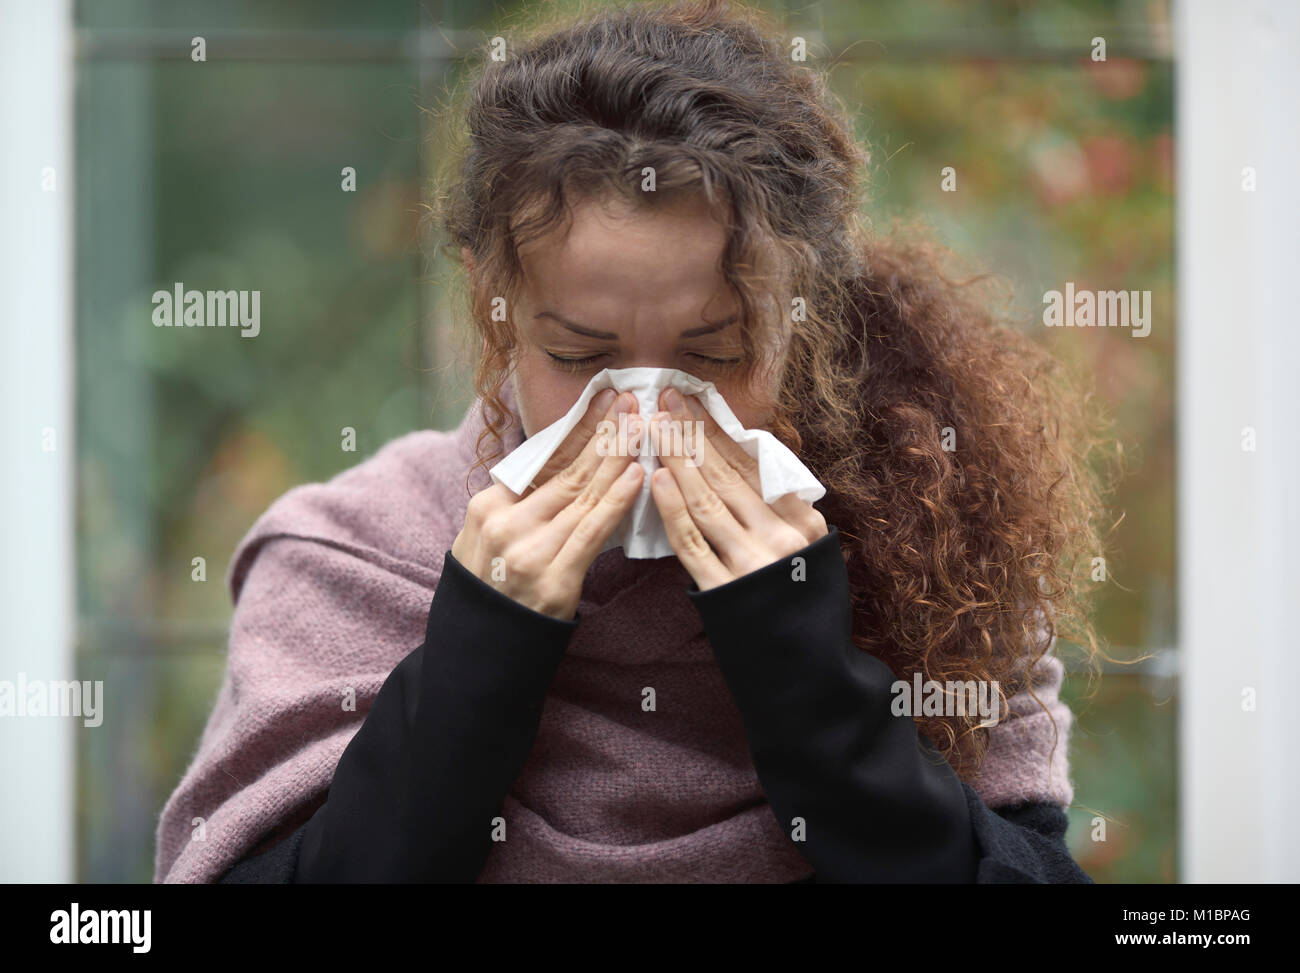 Symbol picture for cold, flu, disease, portrait of a woman blowing her nose in paper tissue - Stock Image